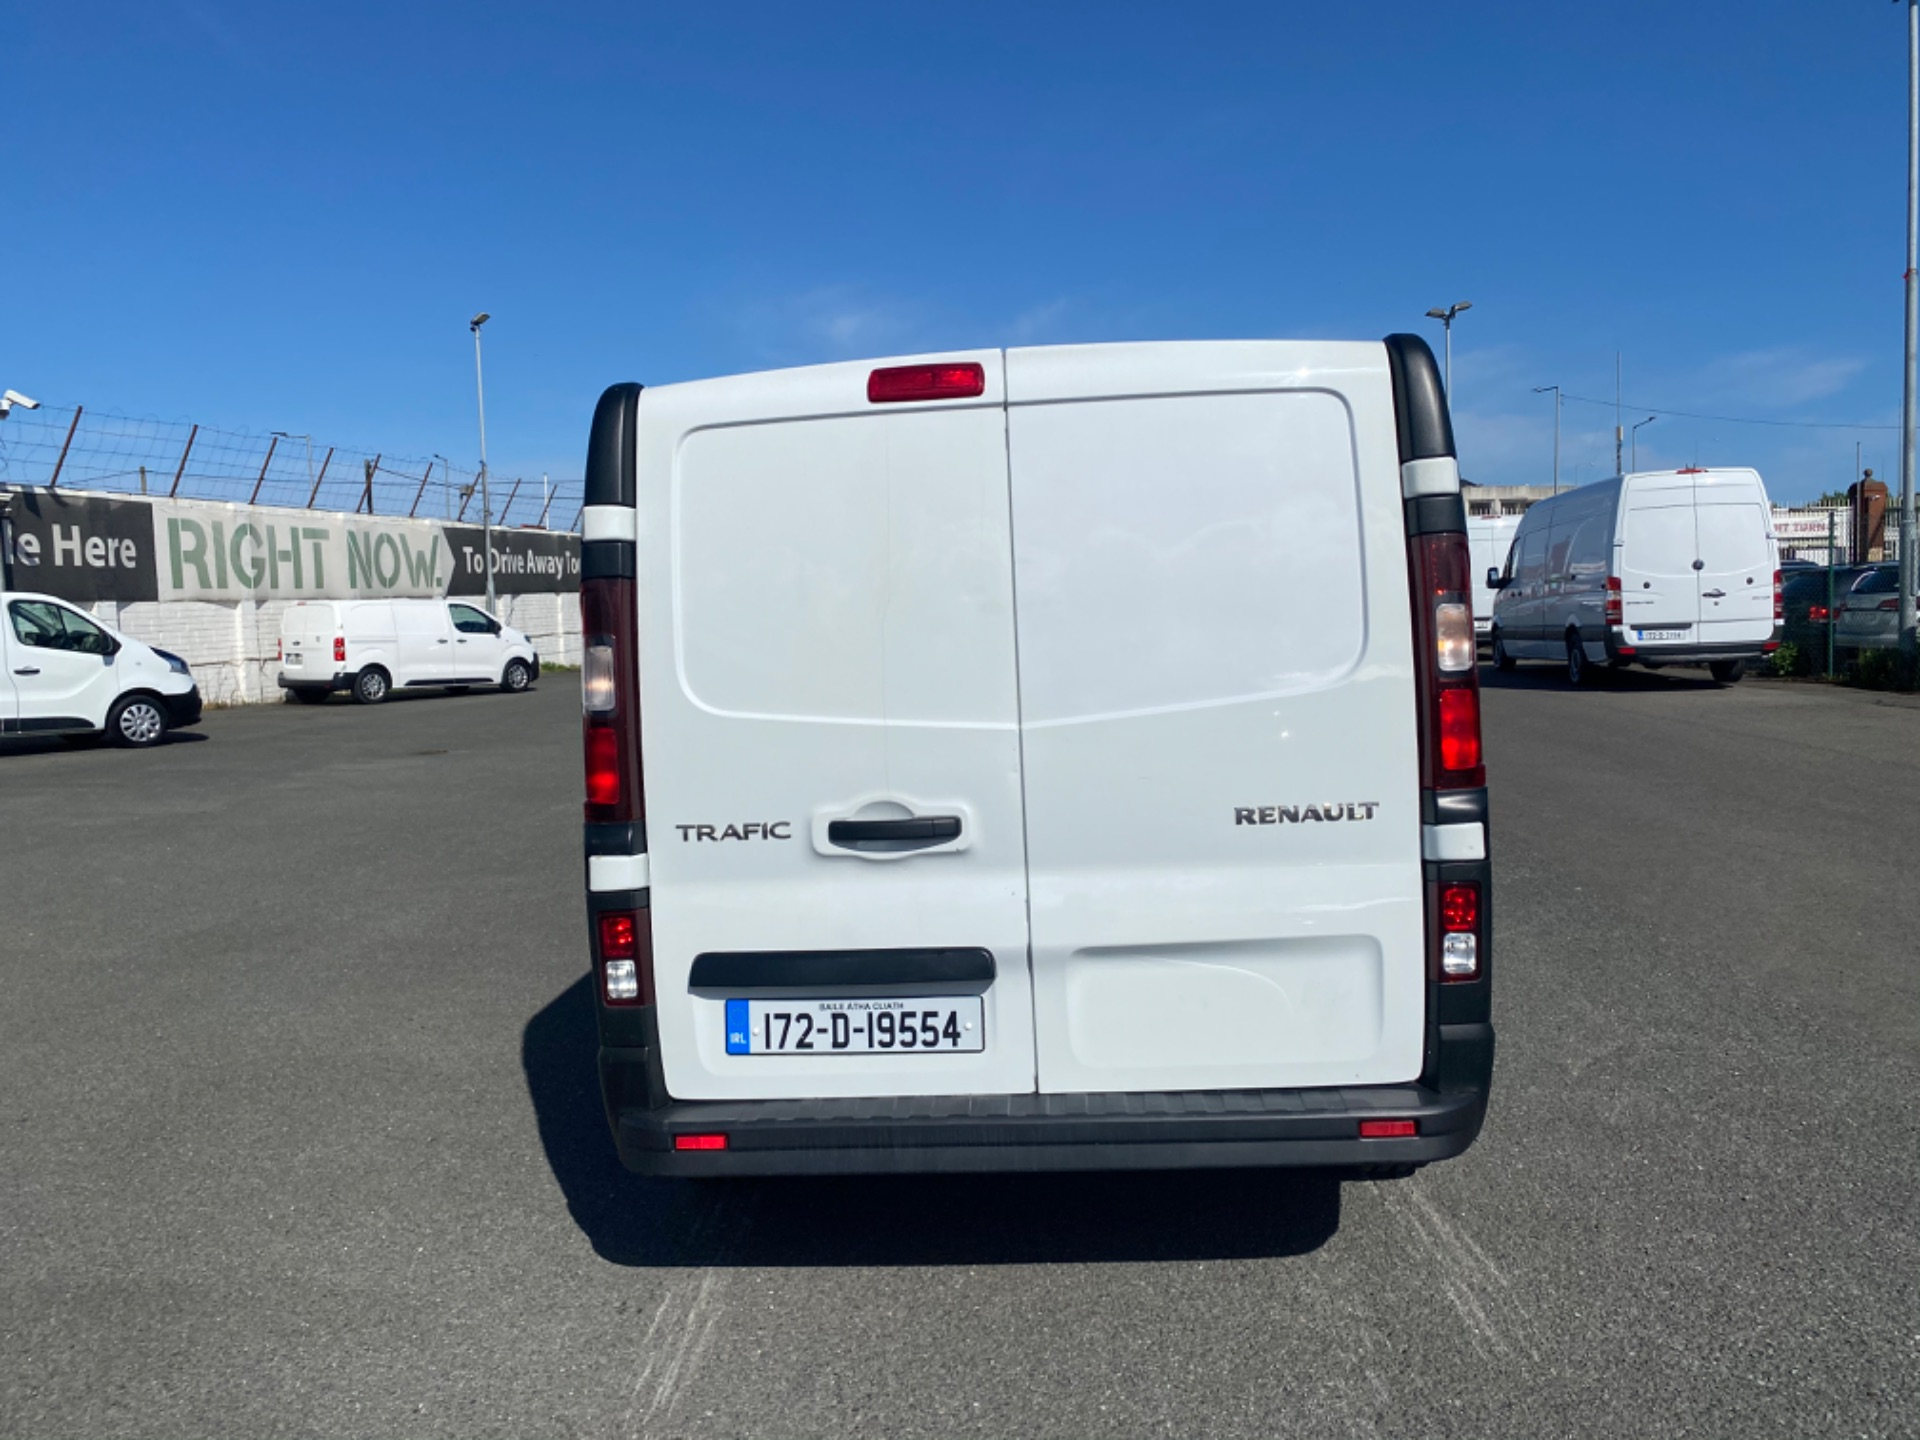 2017 Renault Trafic LL29 DCI 120 BUSINESS 3DR (172D19554) Image 6